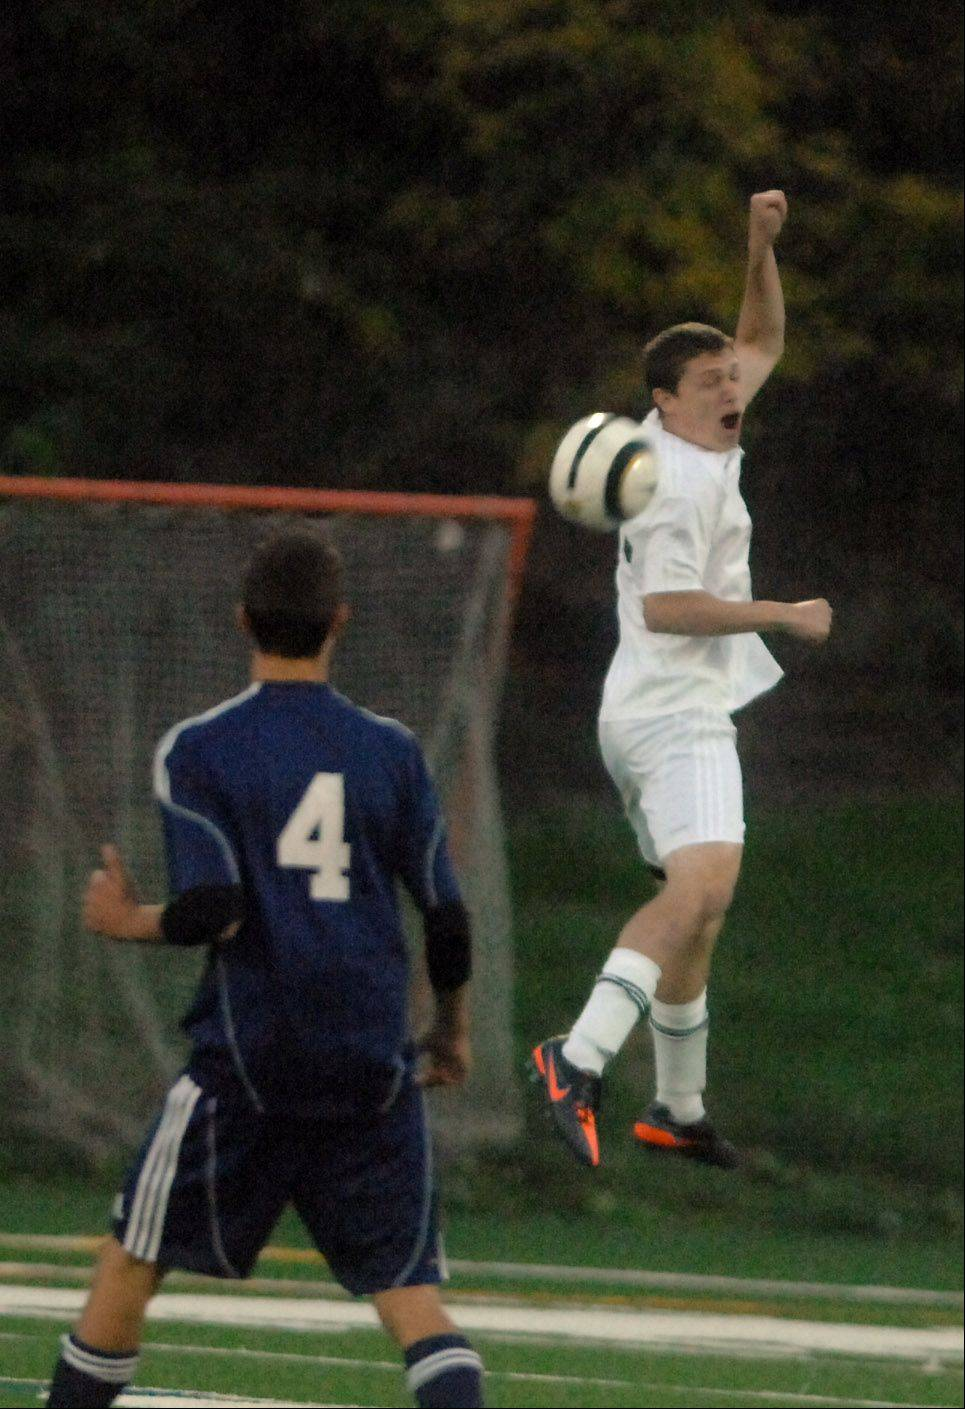 Ben Ruby of Glenbard West goes up for a ball during the Bartlett at Glenbard West boys soccer game Thursday.